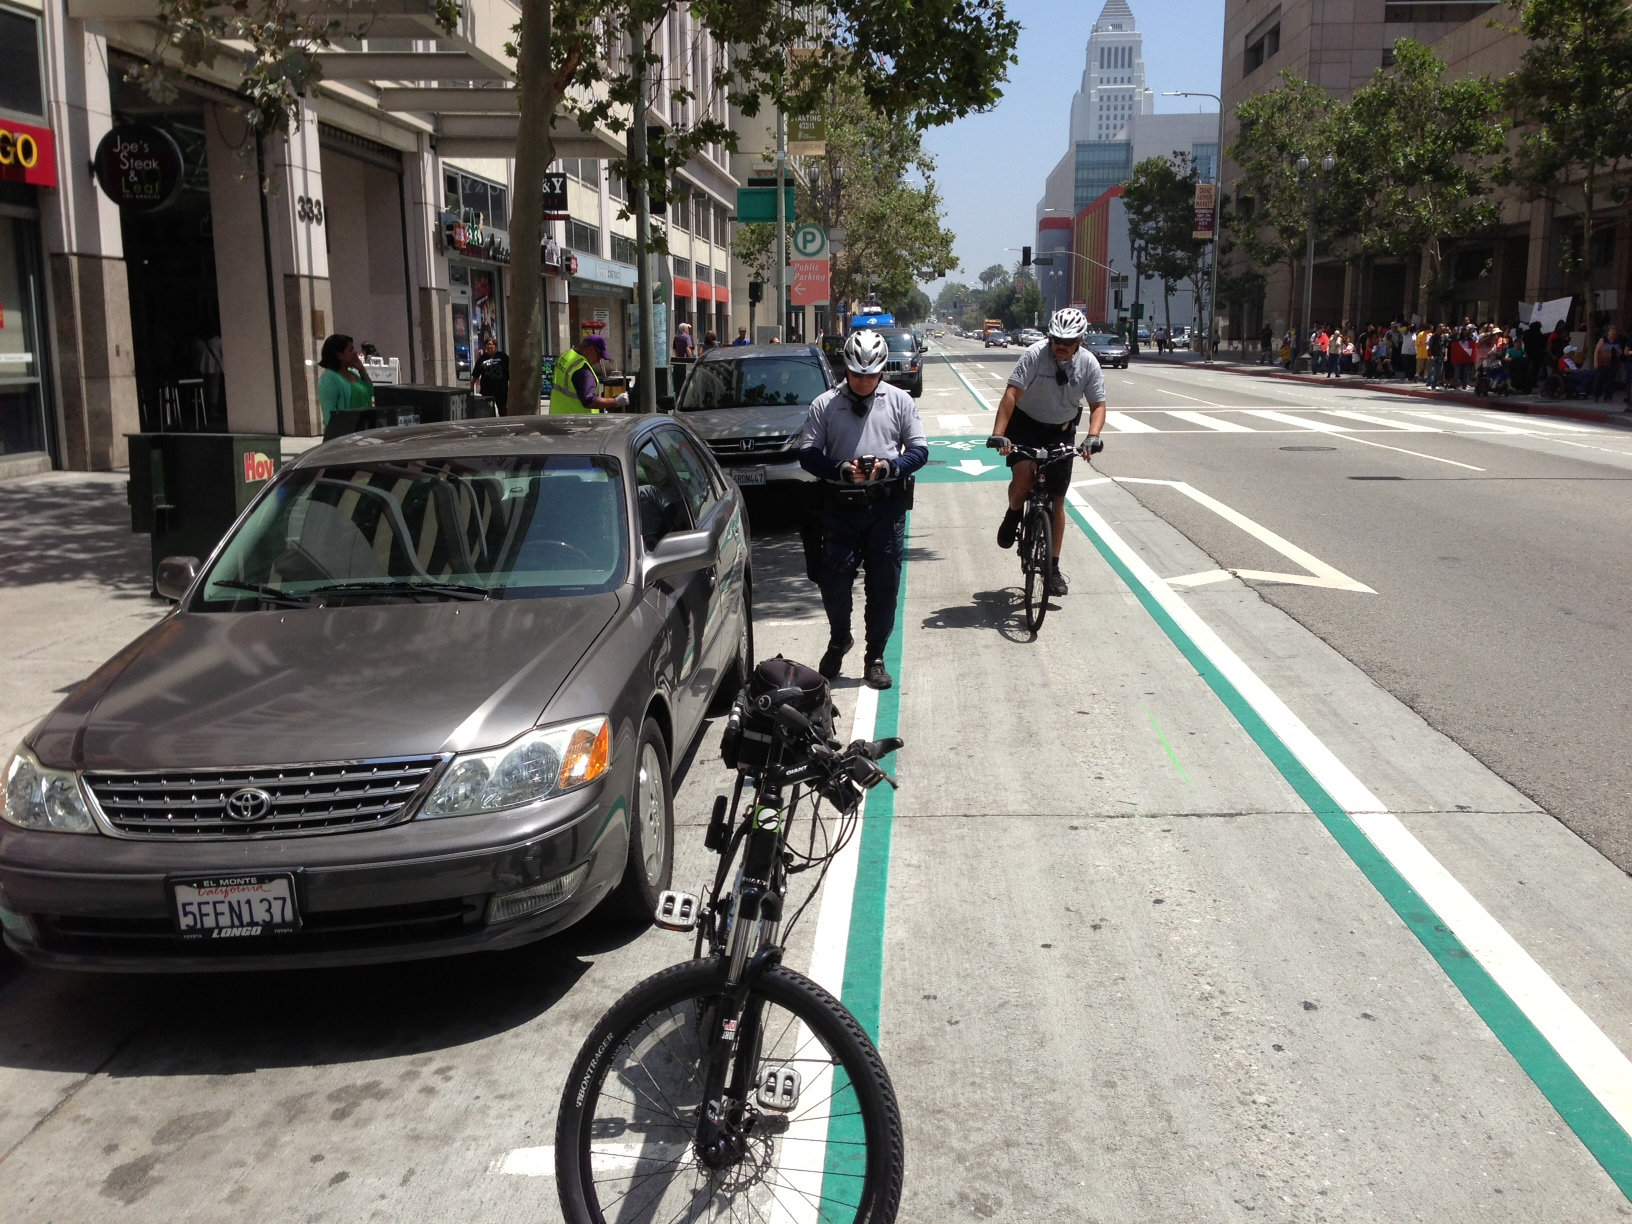 City Of Los Angeles Parking Violation >> A Look at Downtown L.A. Parking Enforcement Riding with LADOT – Streetsblog Los Angeles